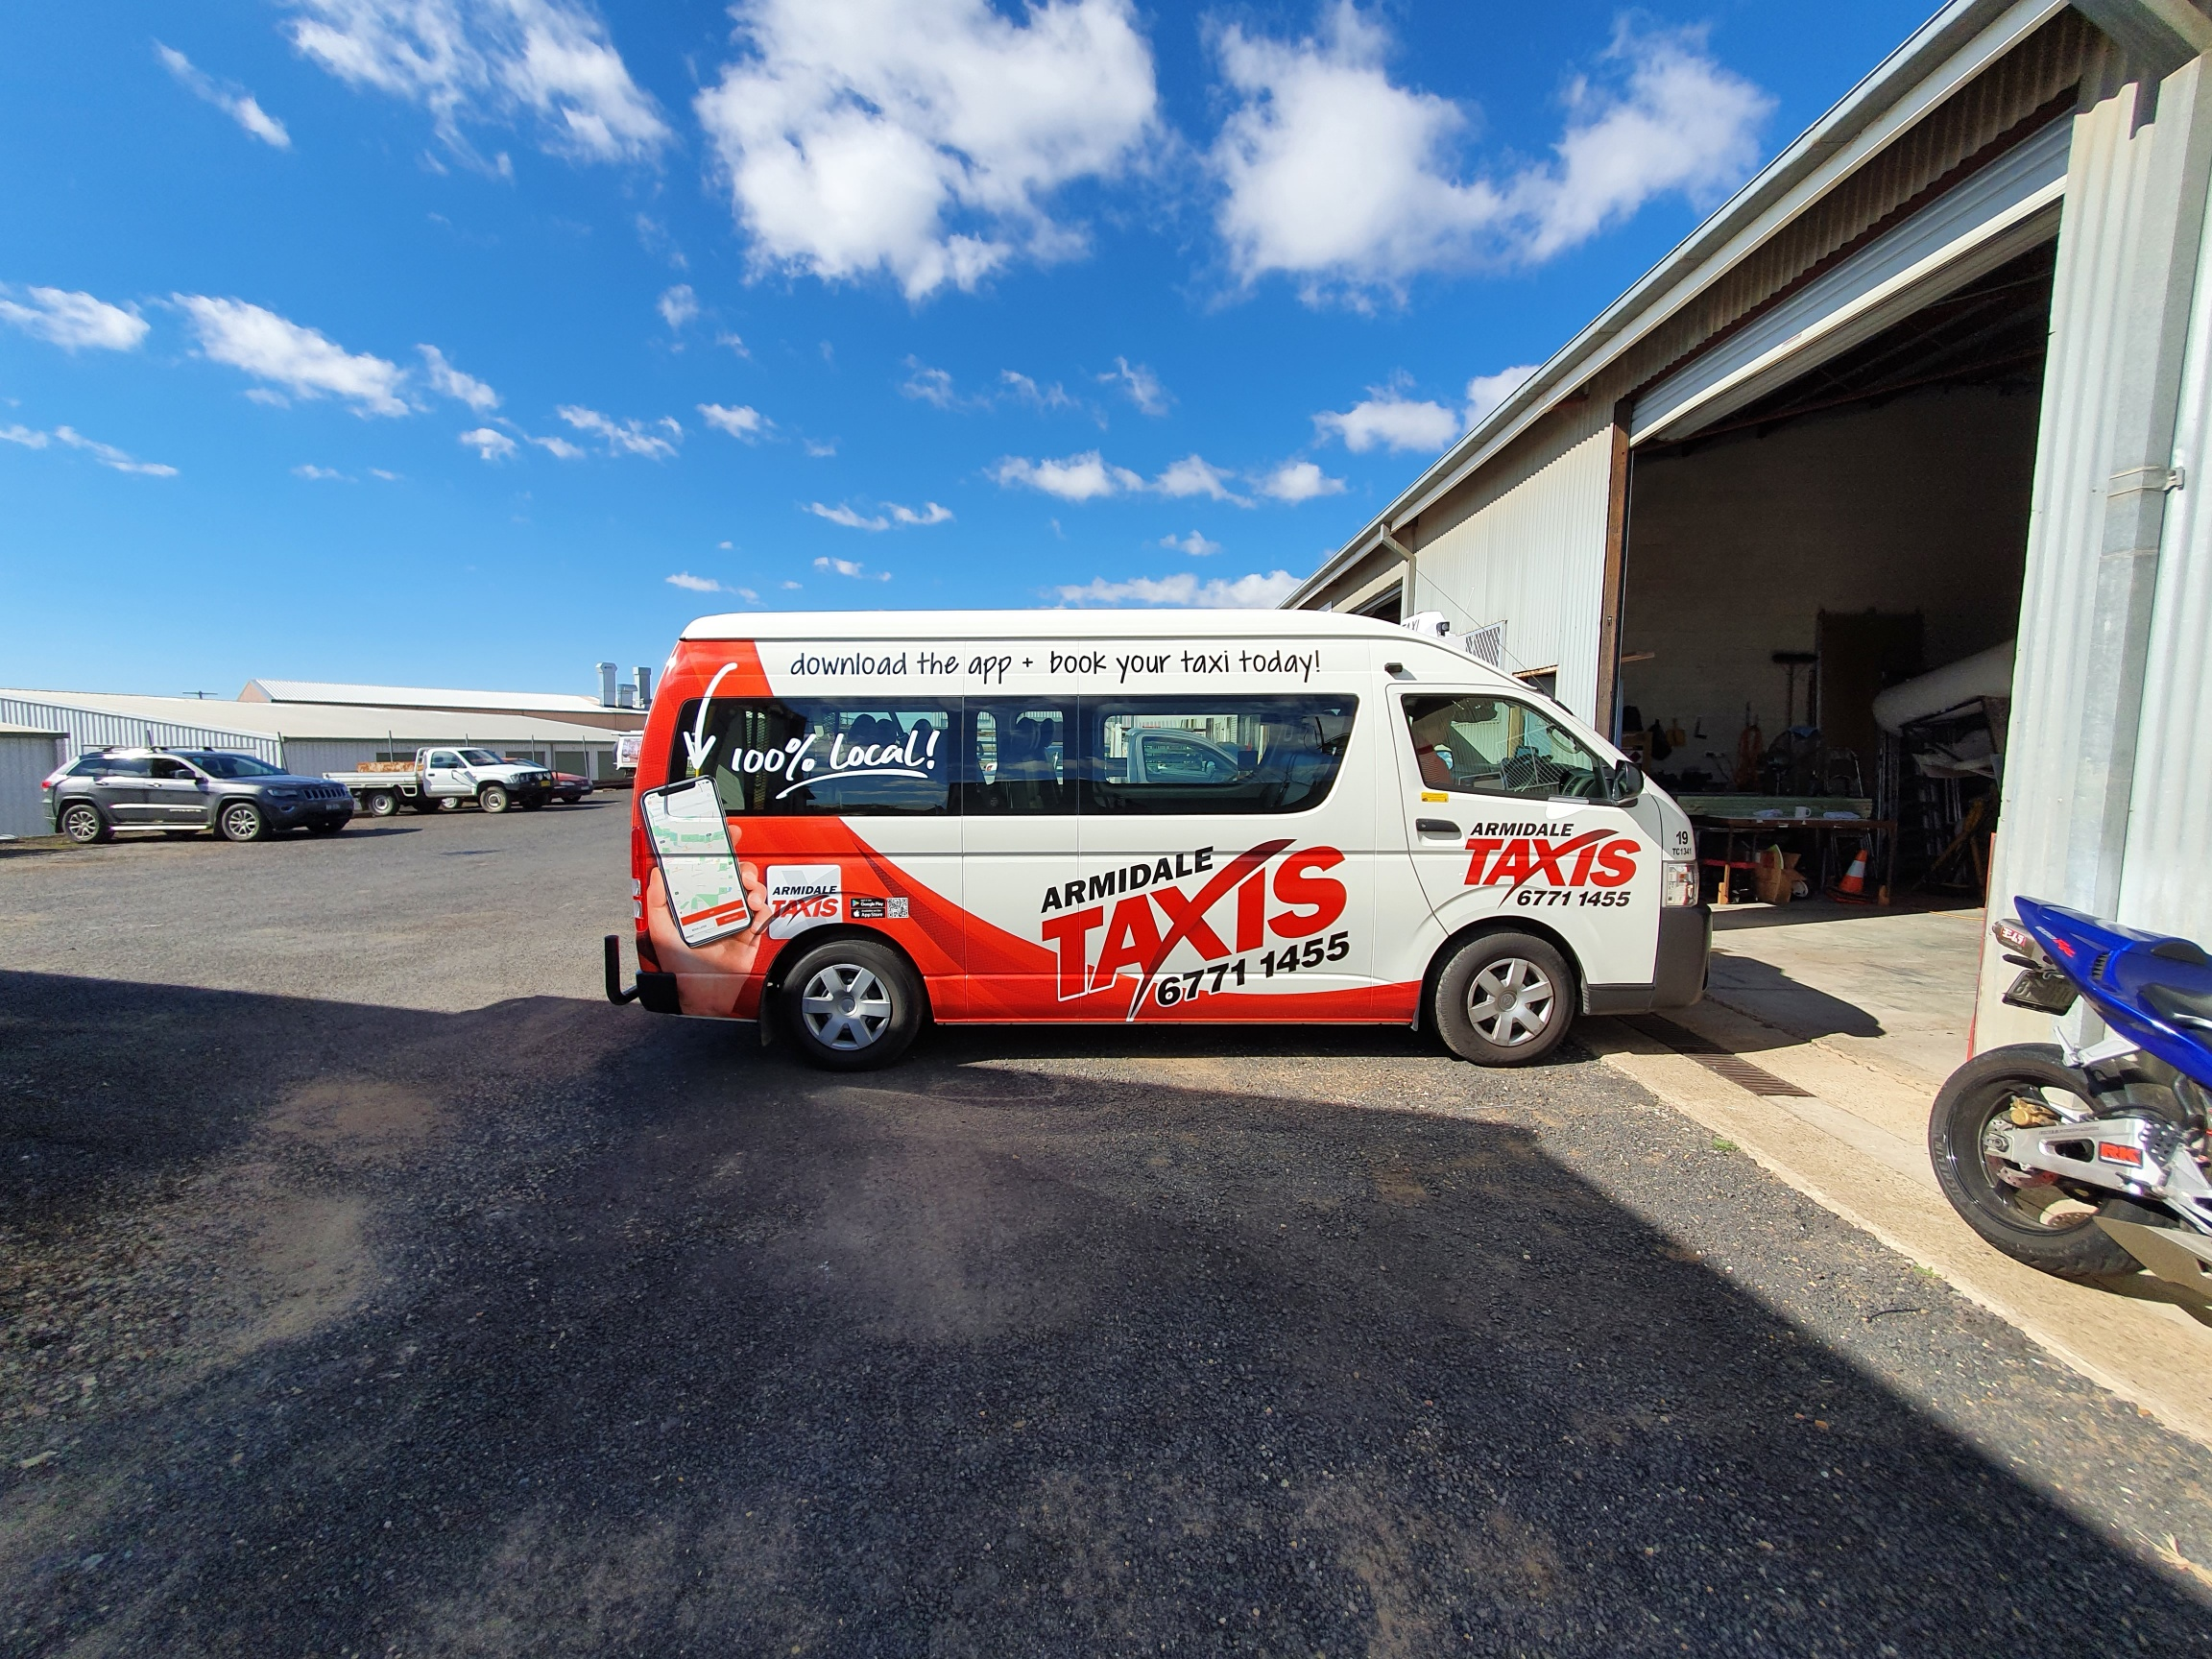 AOK Signs - Armidale Taxis